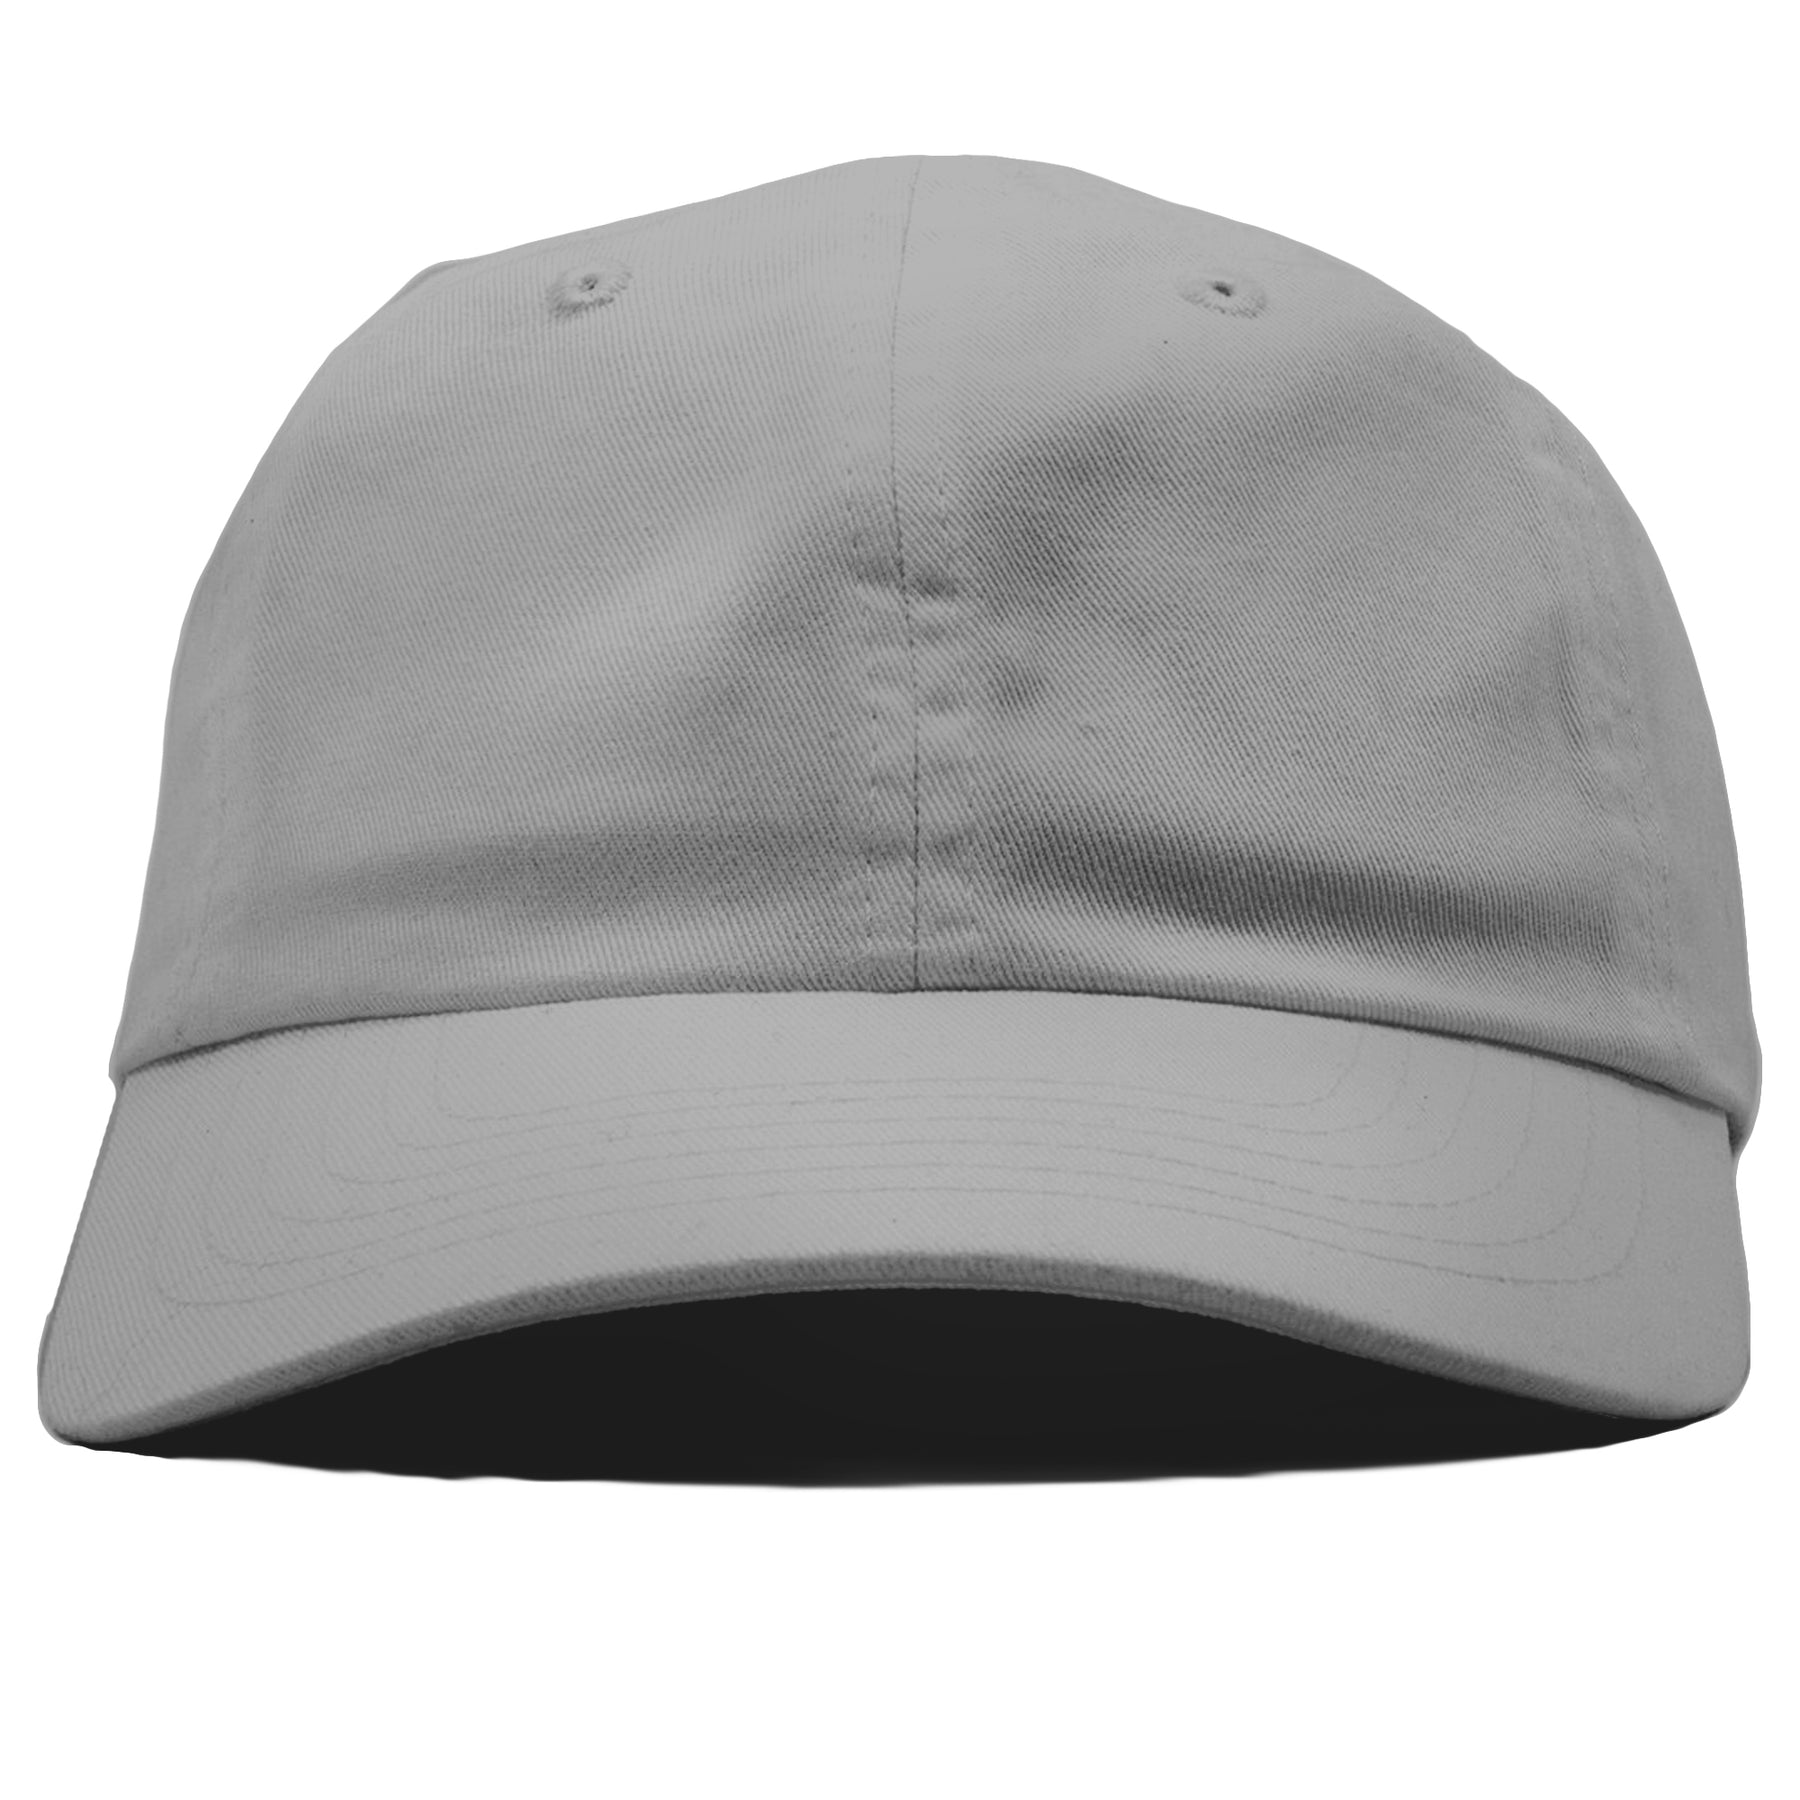 fe9473b09fd The blank light gray dad hat has no design on the front